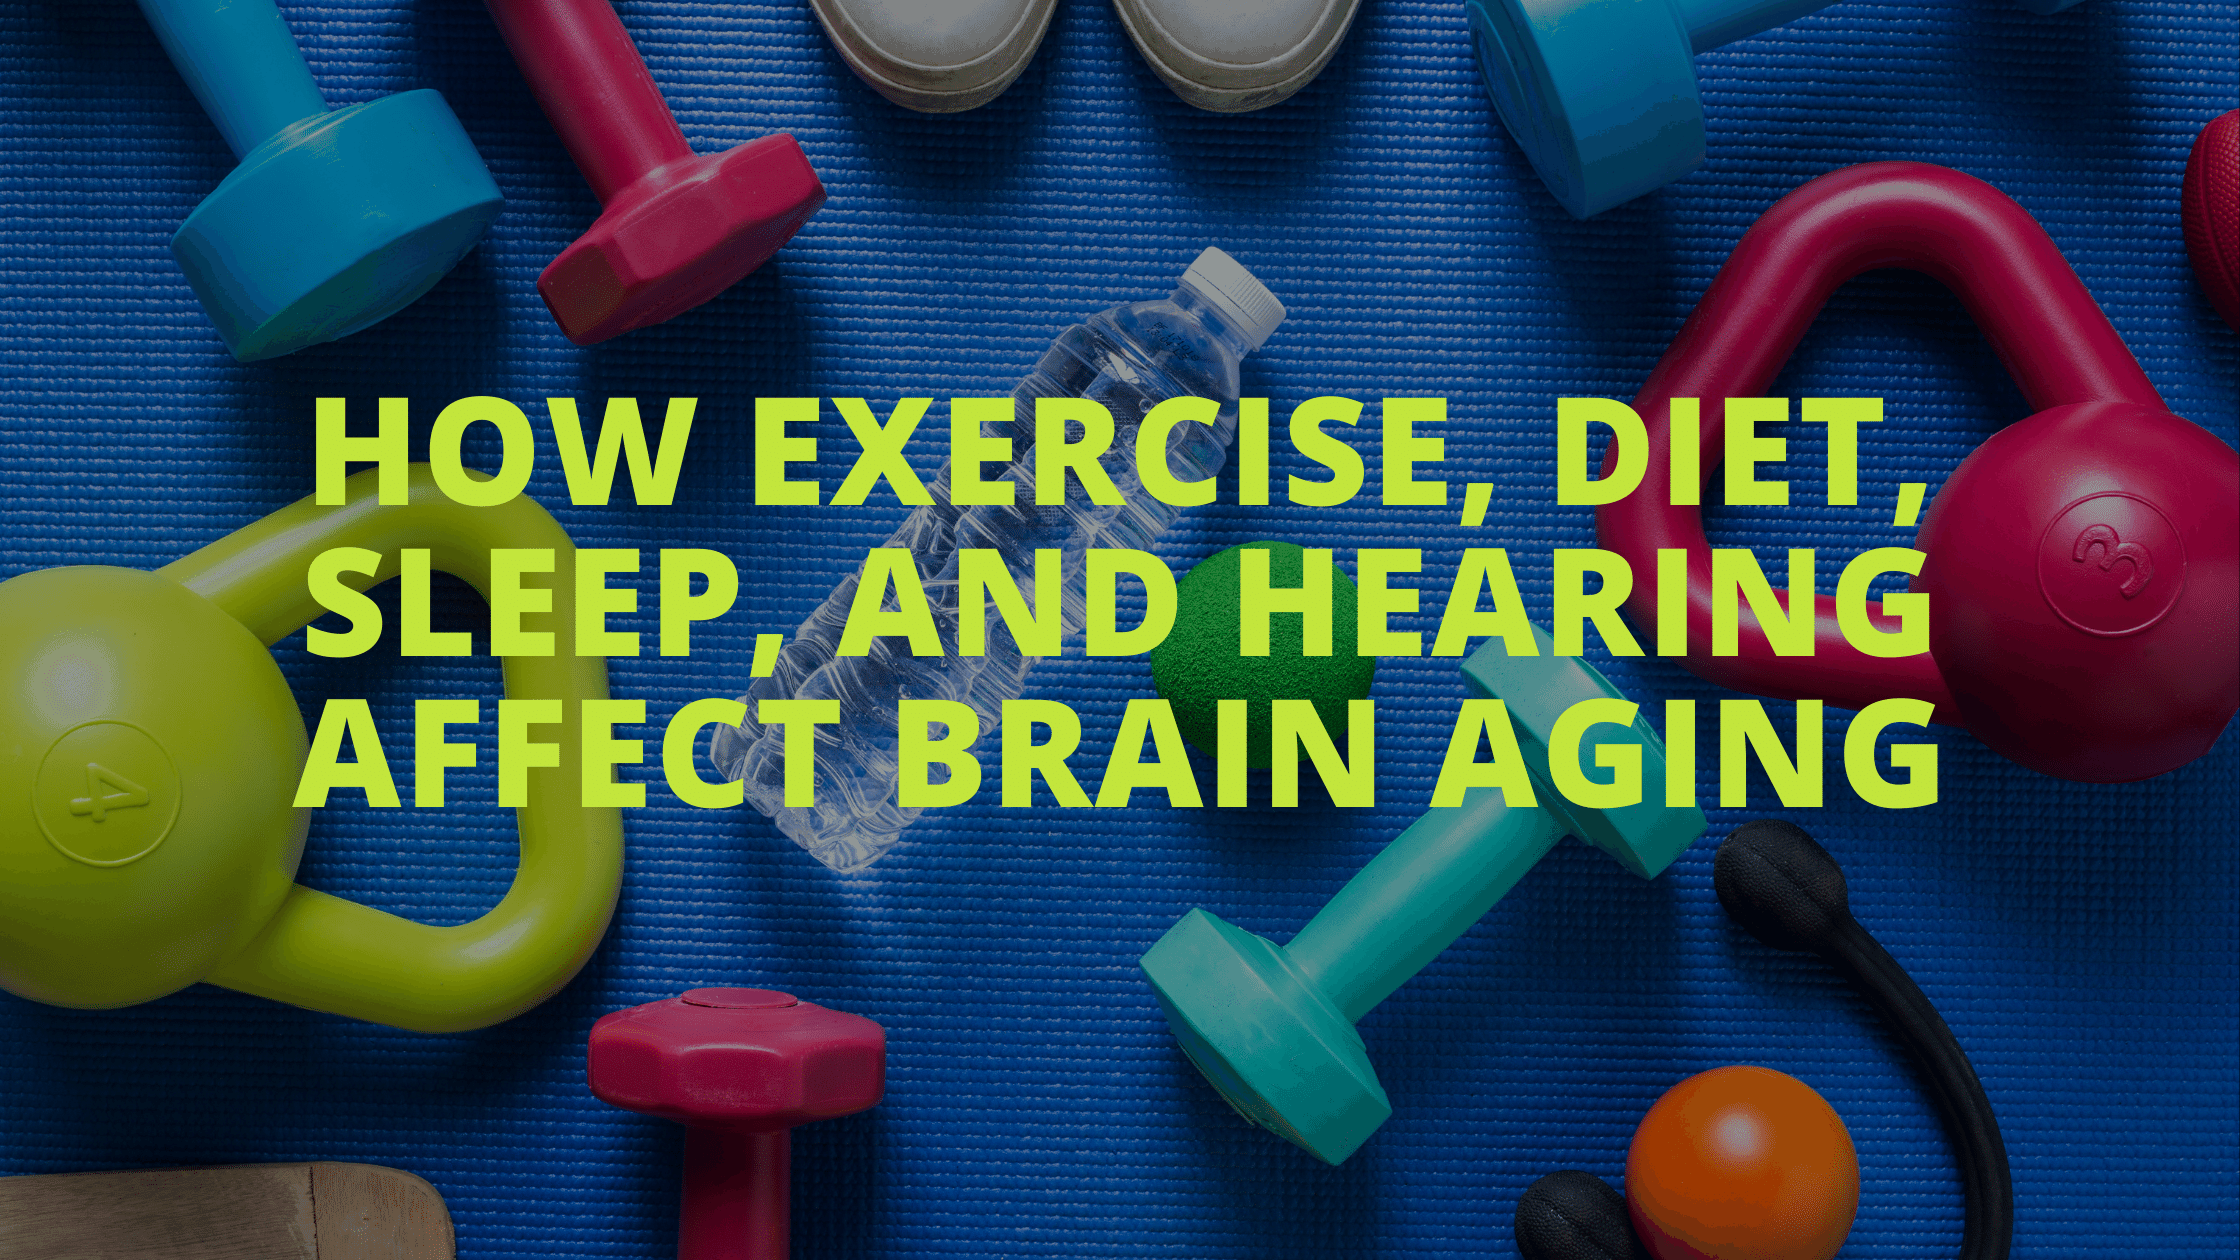 How Exercise, Diet, Sleep, and Hearing Affect Brain Aging